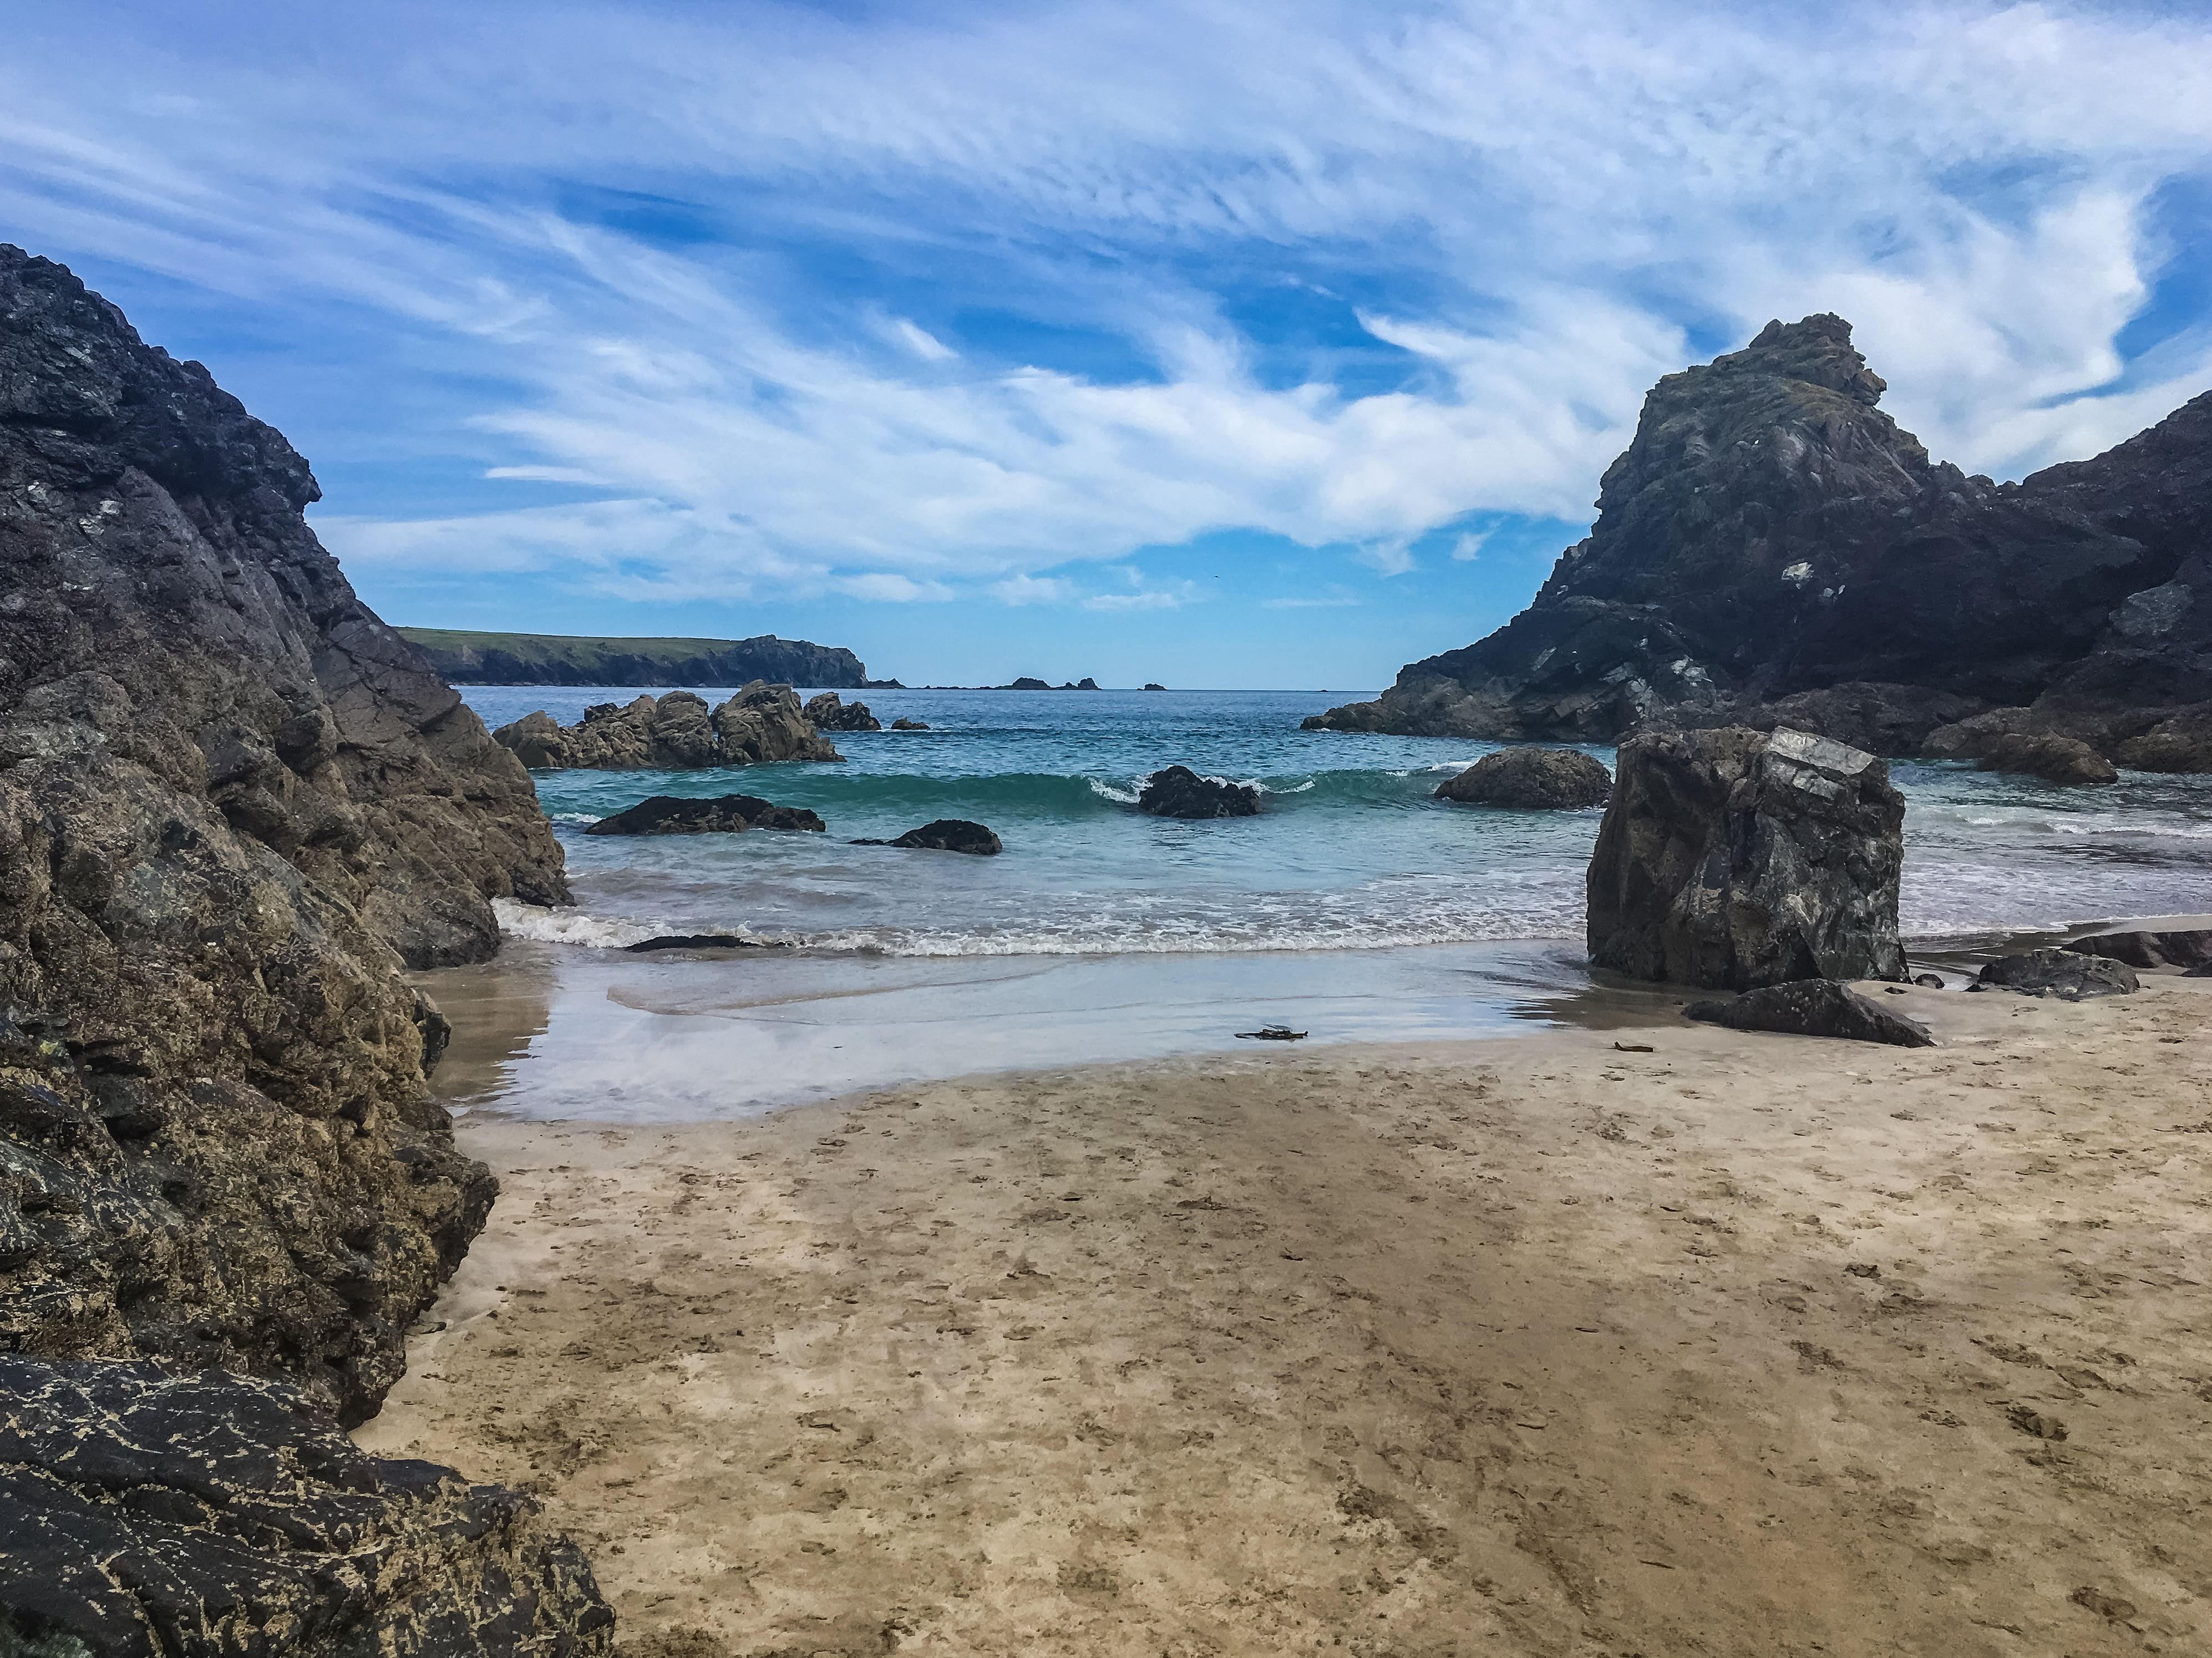 Kynance Cove, Cornwall